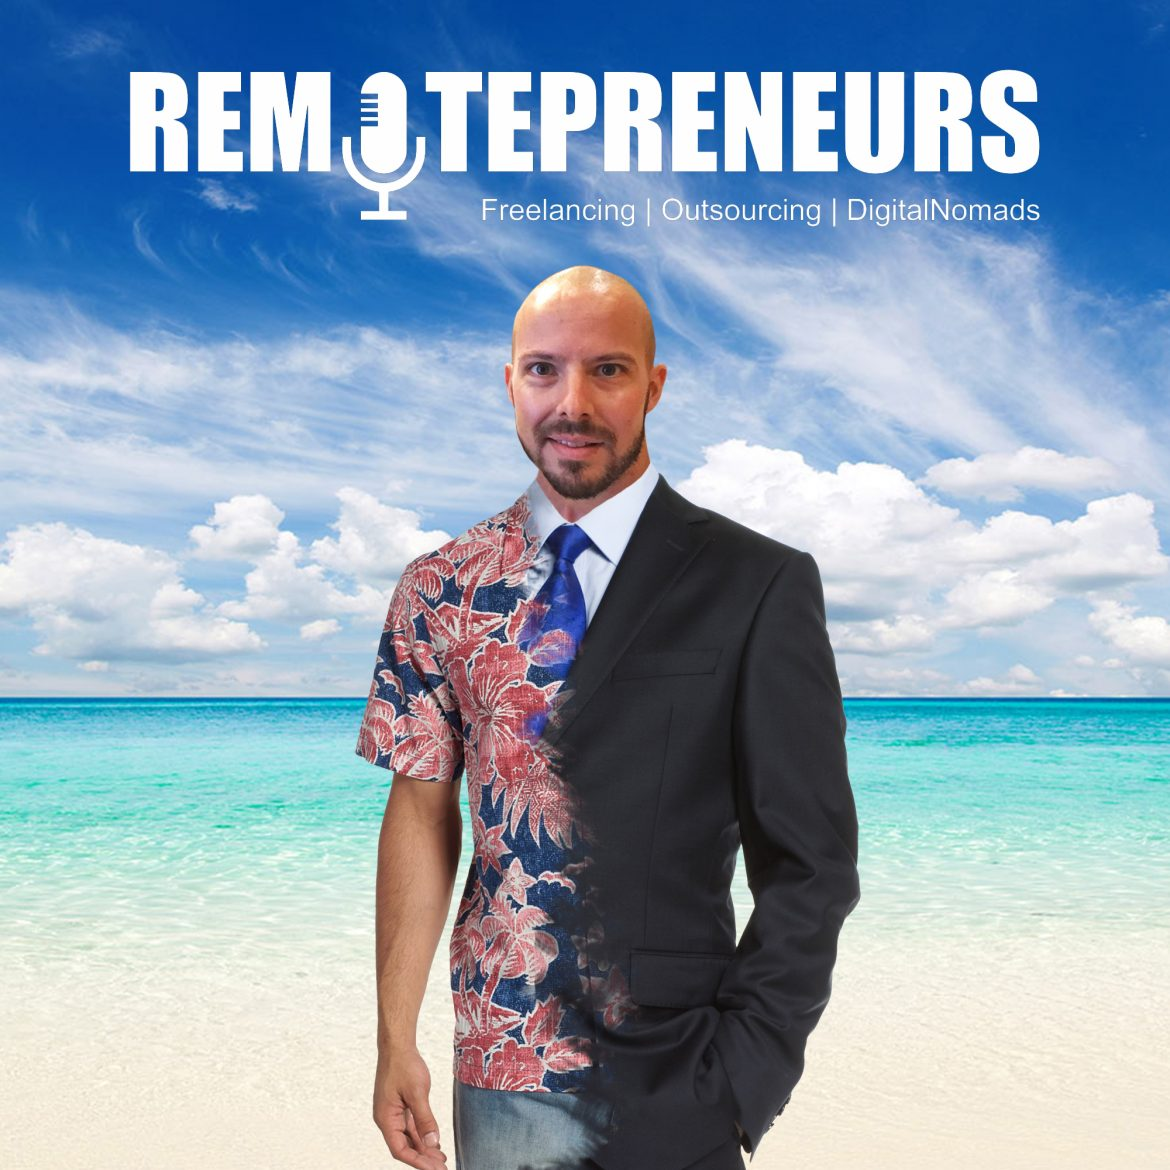 ep 5 - How to Pay 0% Taxes w E-Residency - Christoph Huebner